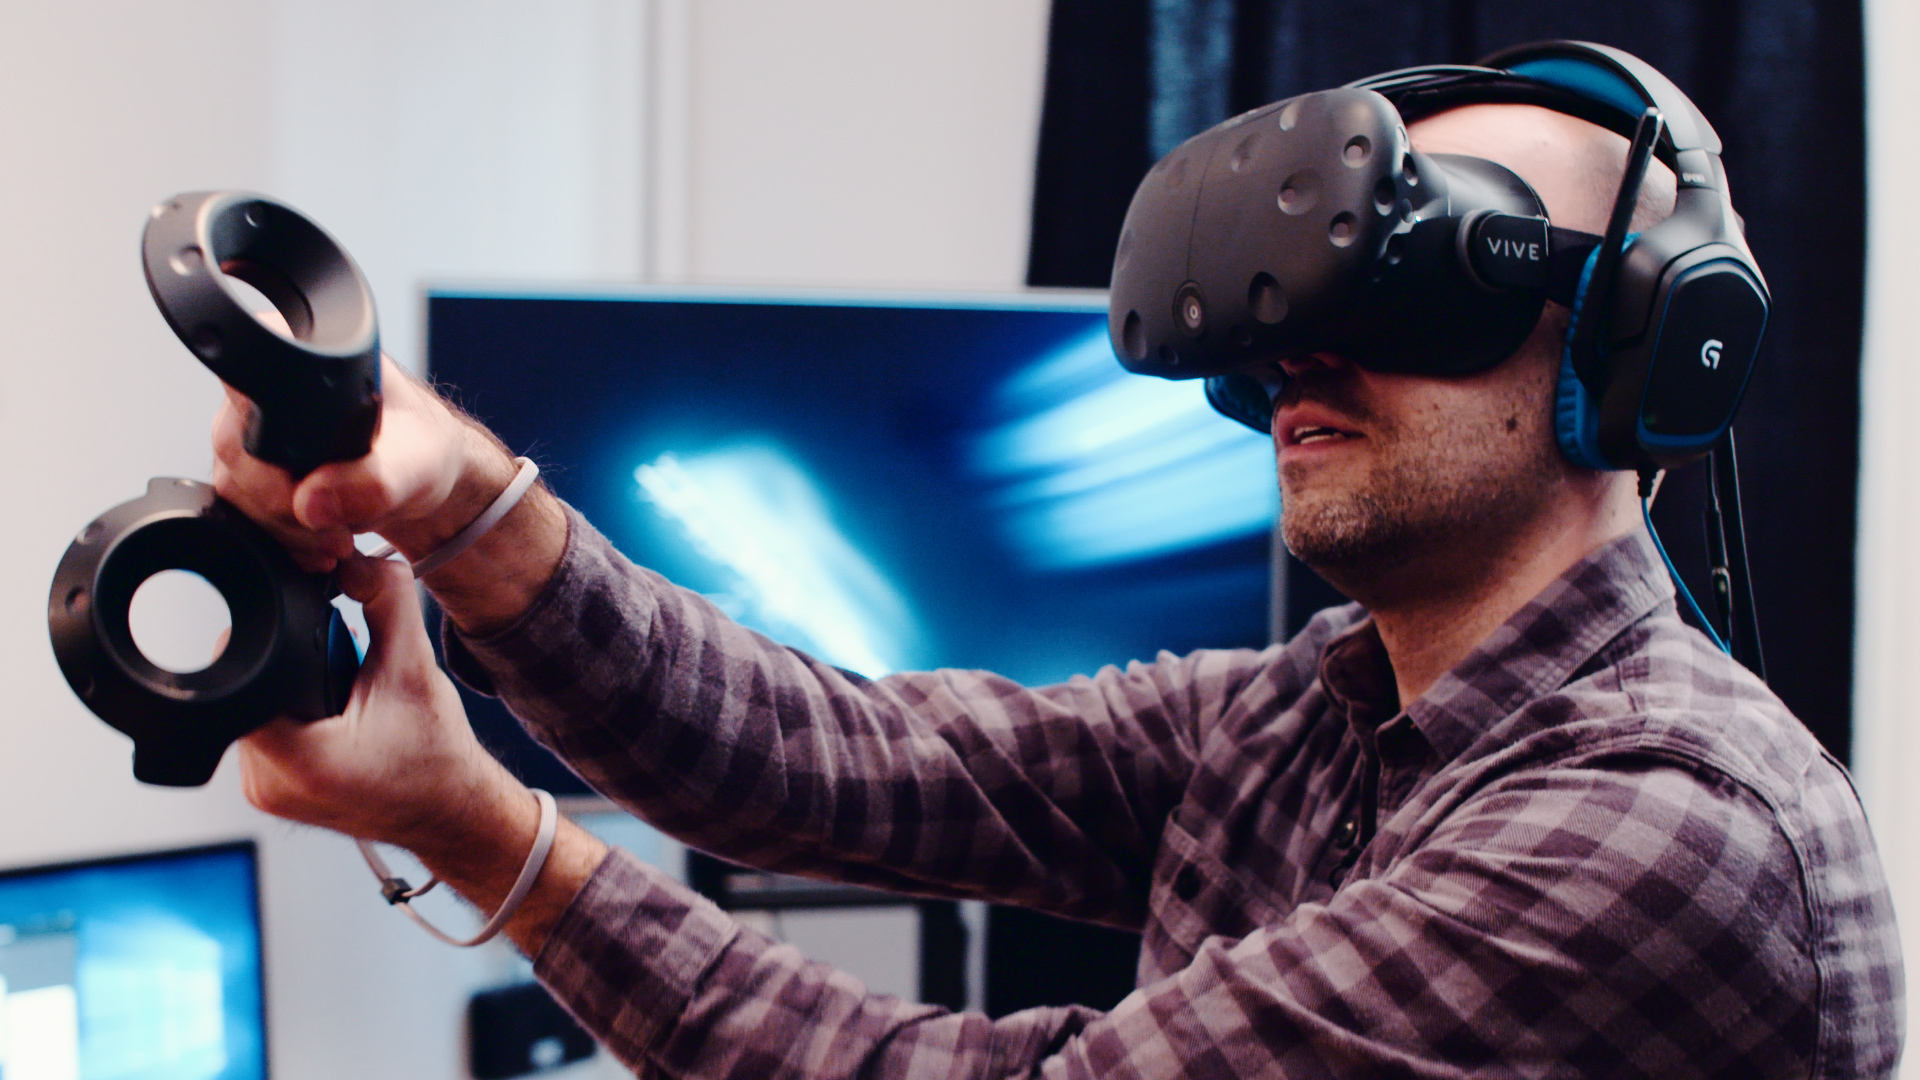 Five Next Gen Games To Play On Your Vr Ready Laptop